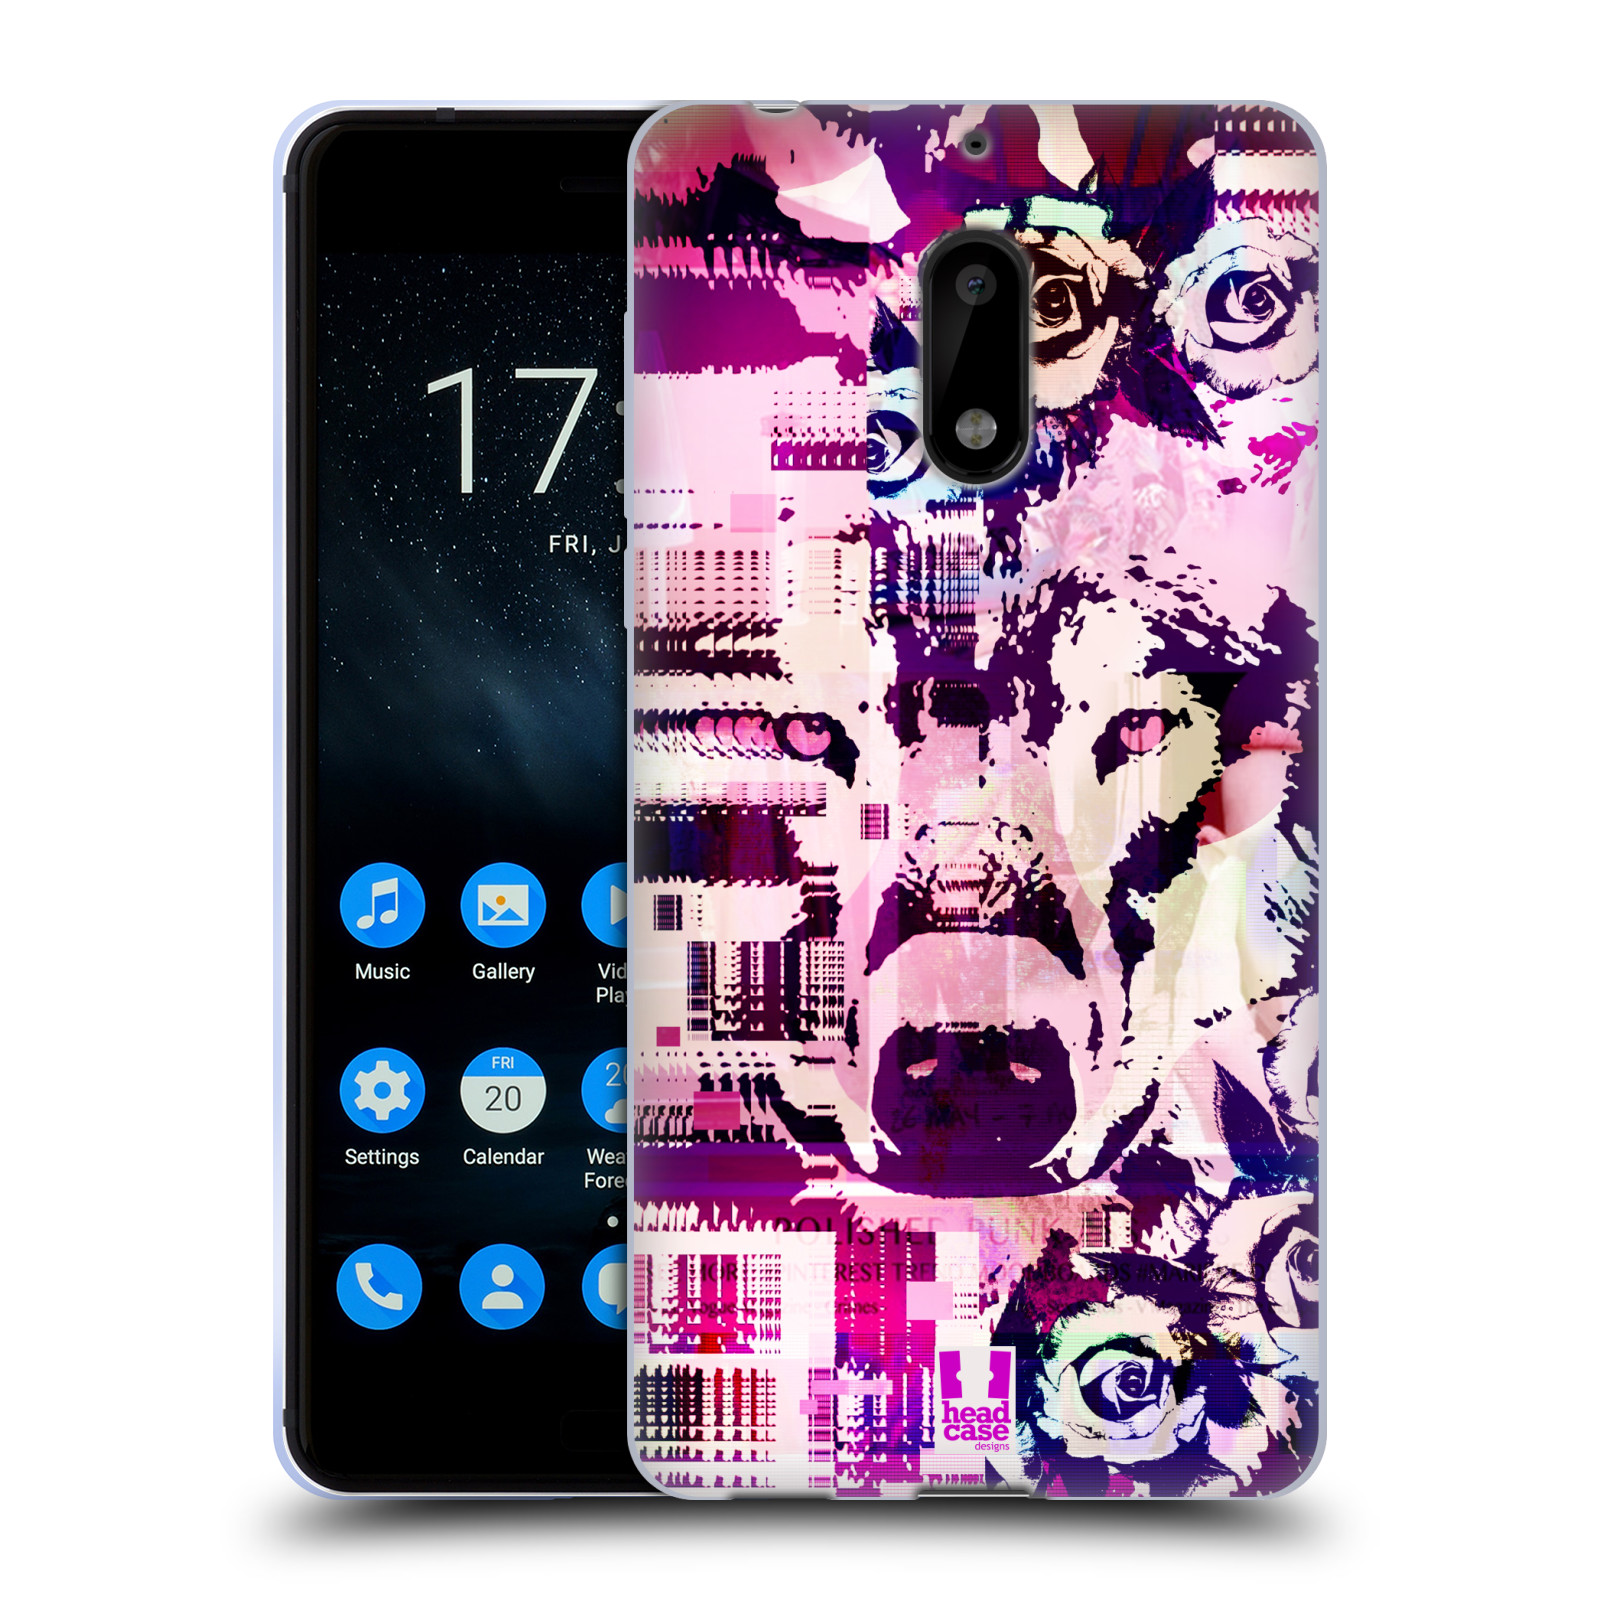 HEAD-CASE-DESIGNS-WILD-GLITCH-SOFT-GEL-CASE-FOR-NOKIA-PHONES-1